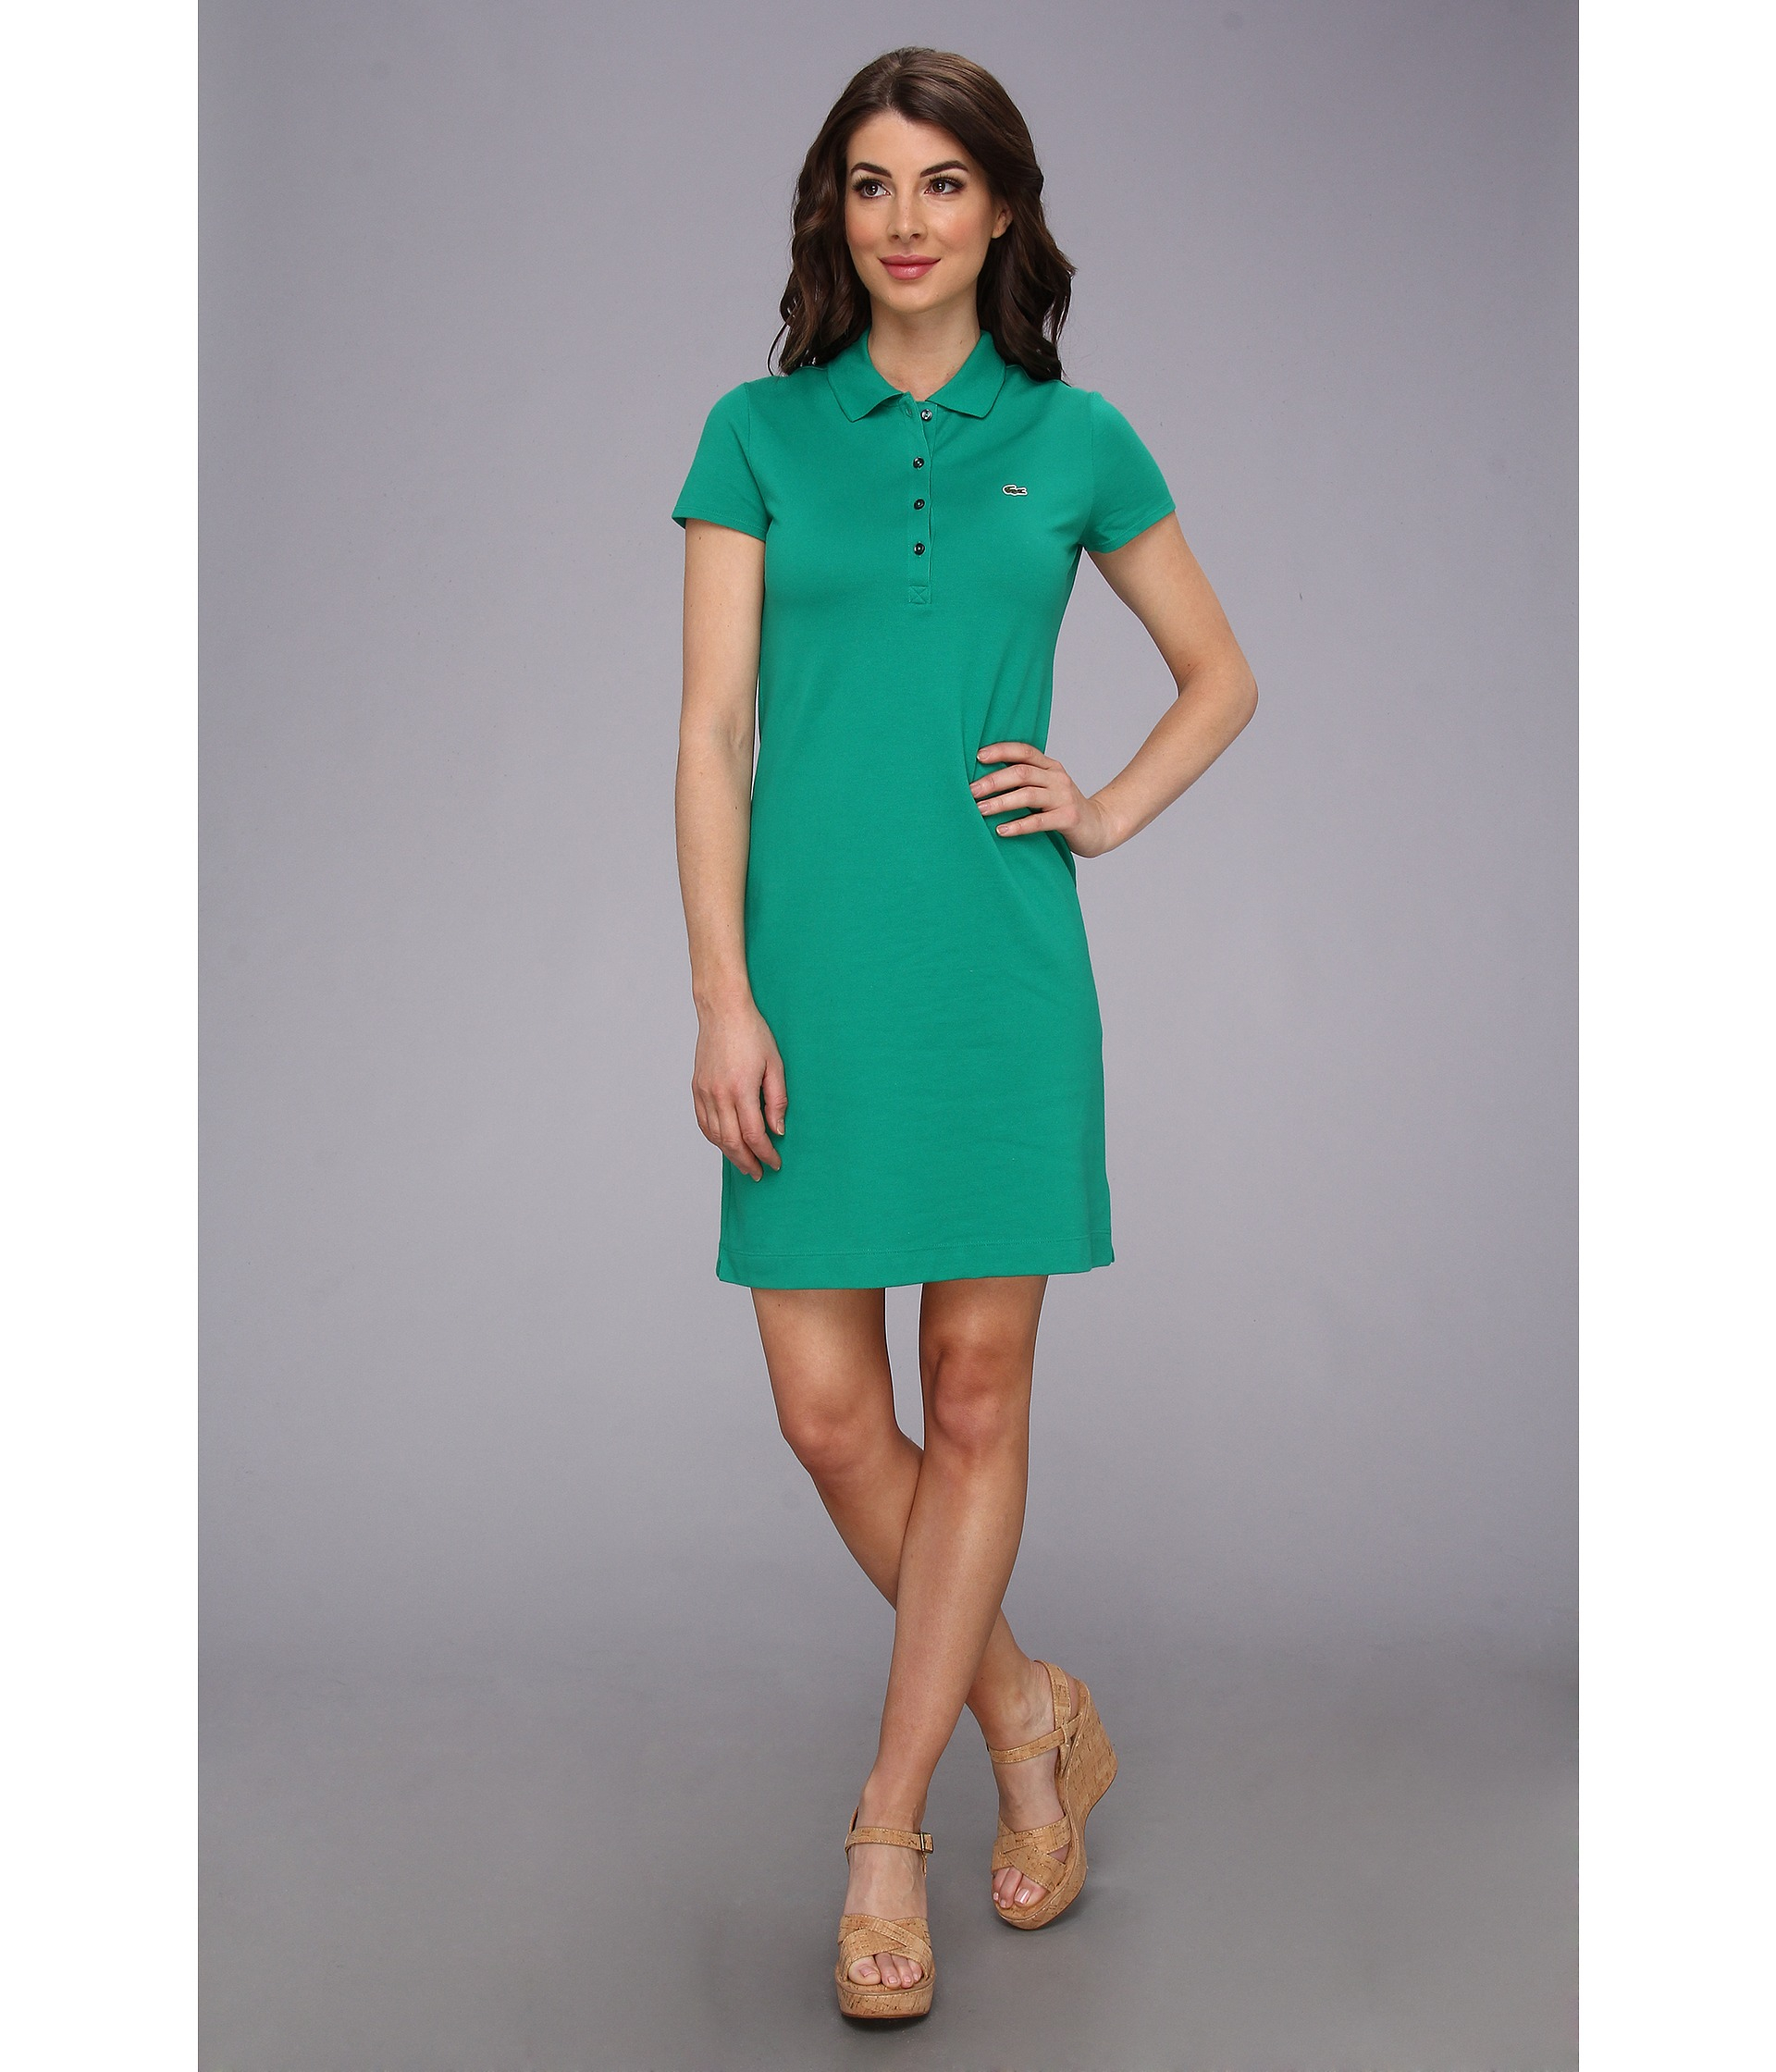 Lyst - Lacoste Ss Stretch Pique Classic Polo Dress in Green